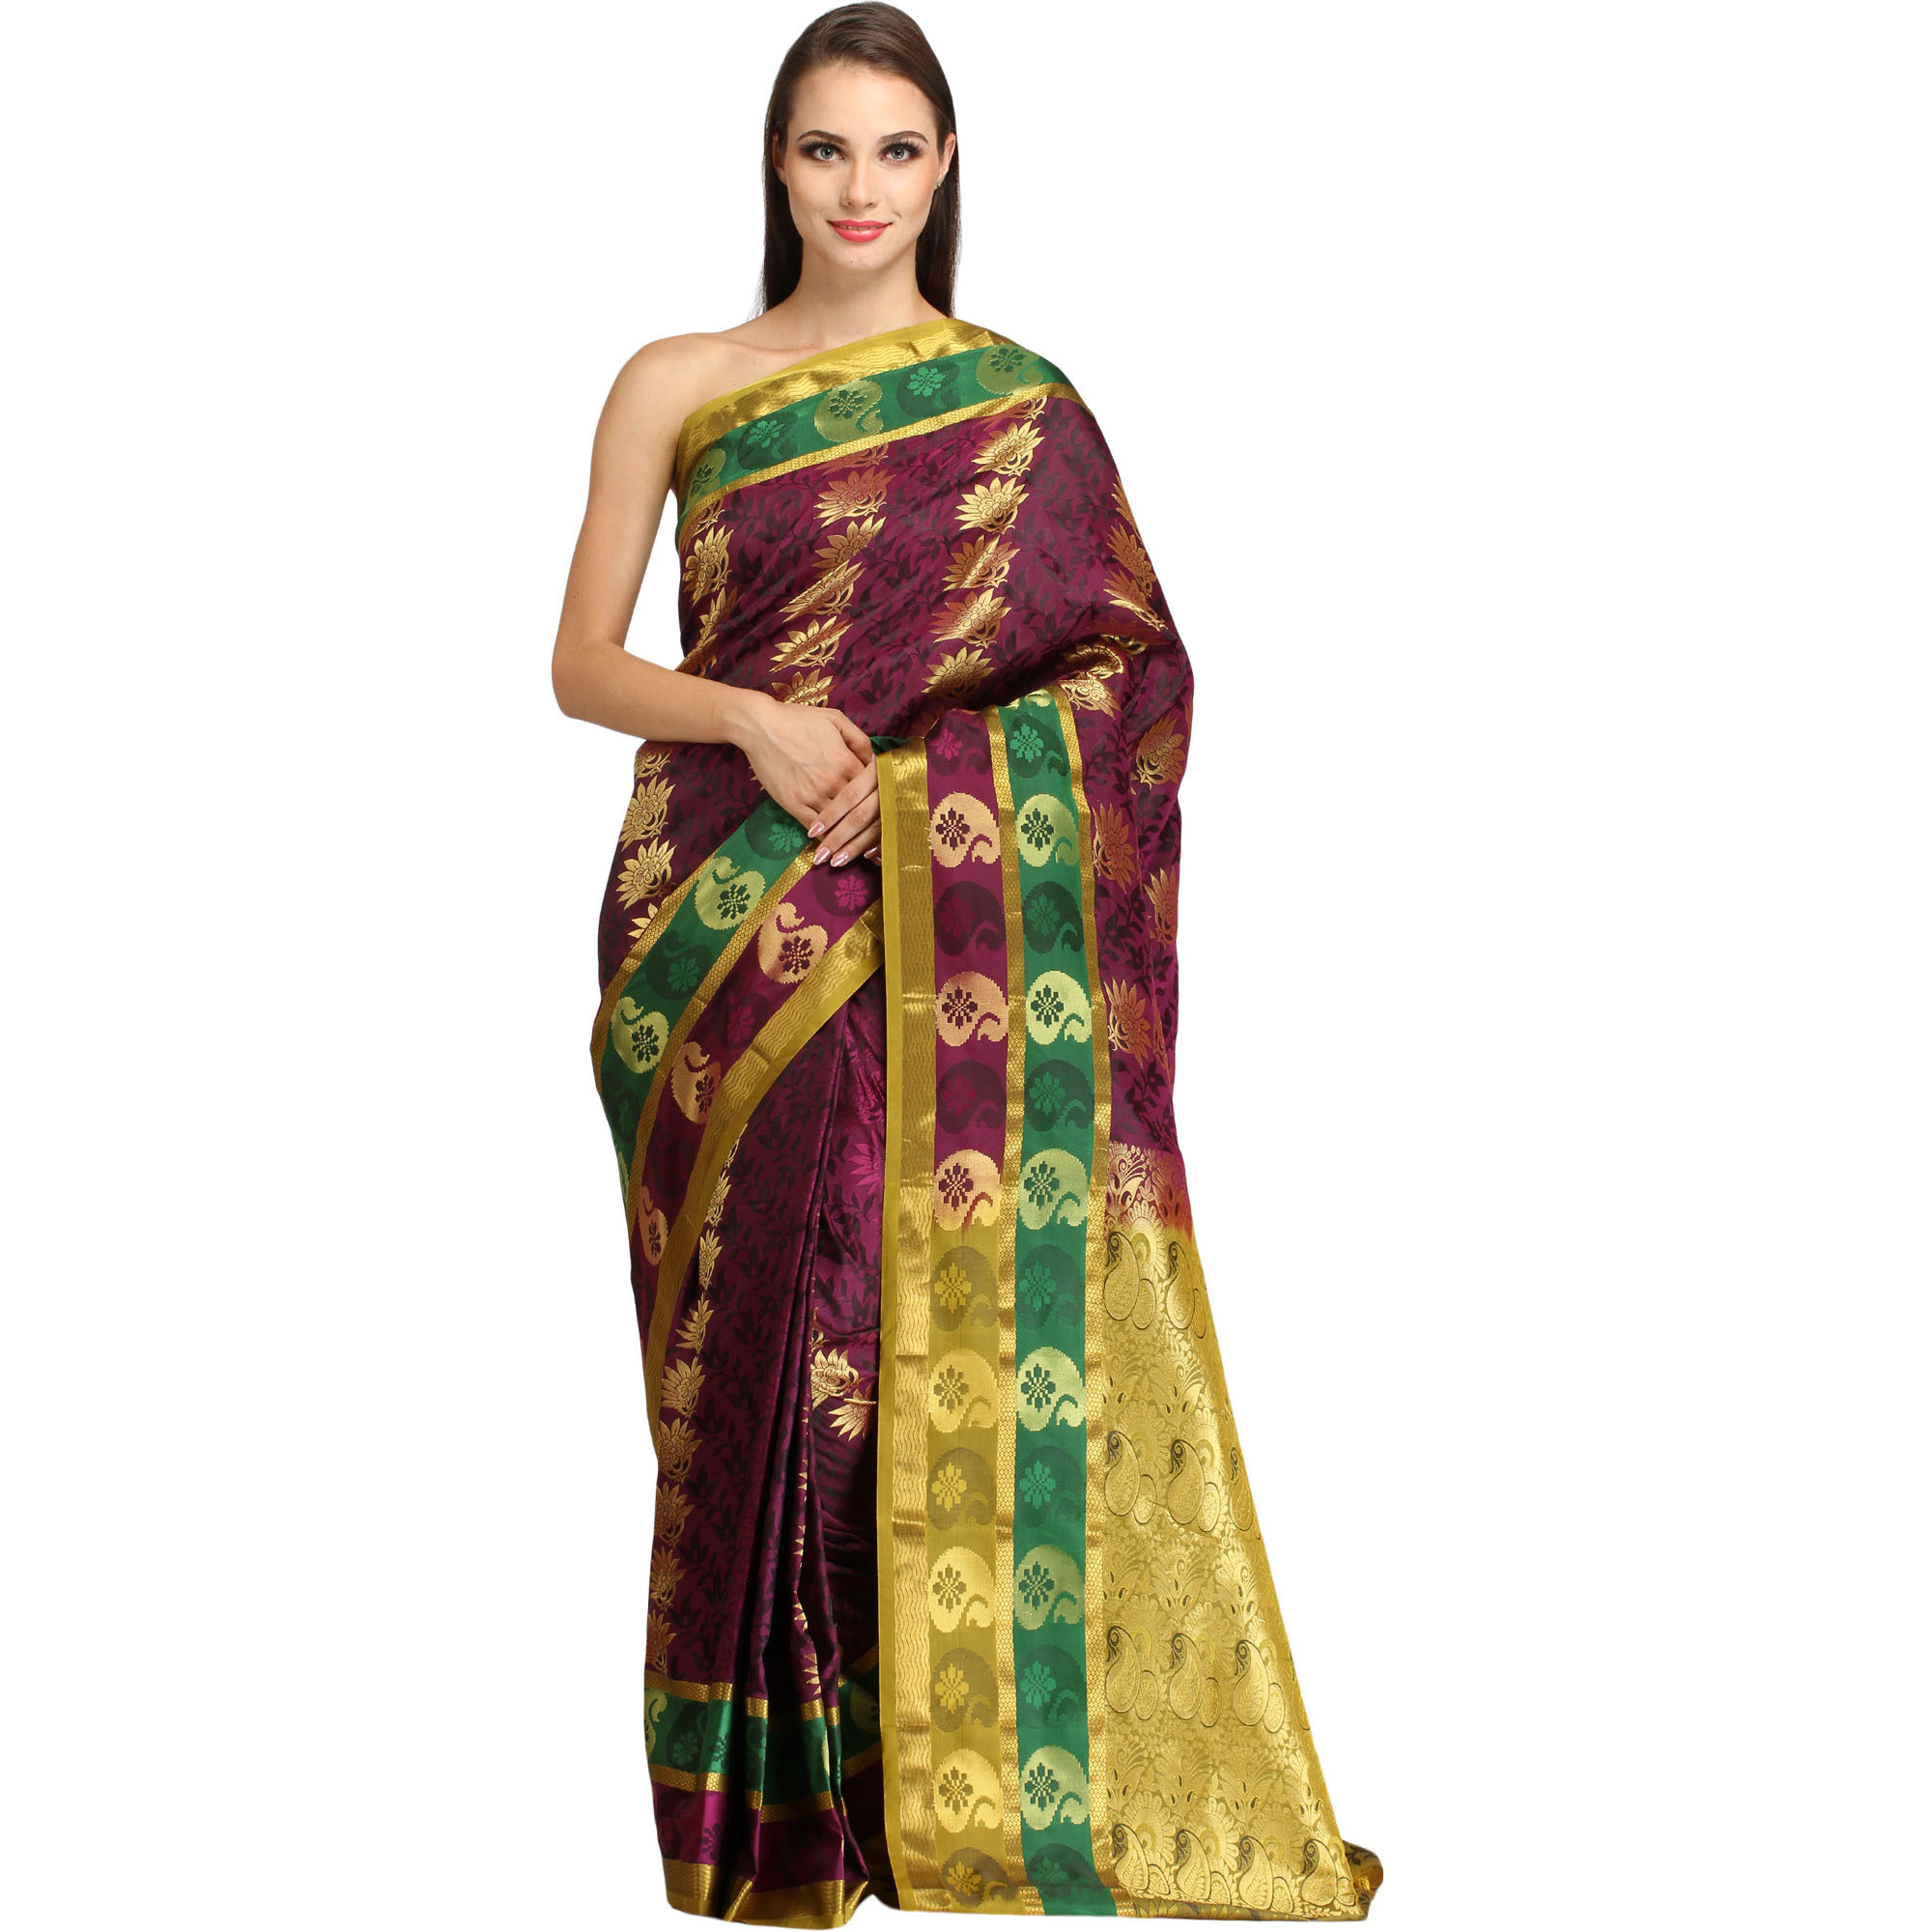 Dark-Purple and Golden Self Weave Sari from Bangalore with Zari-Woven Flowers and Brocaded Pallu